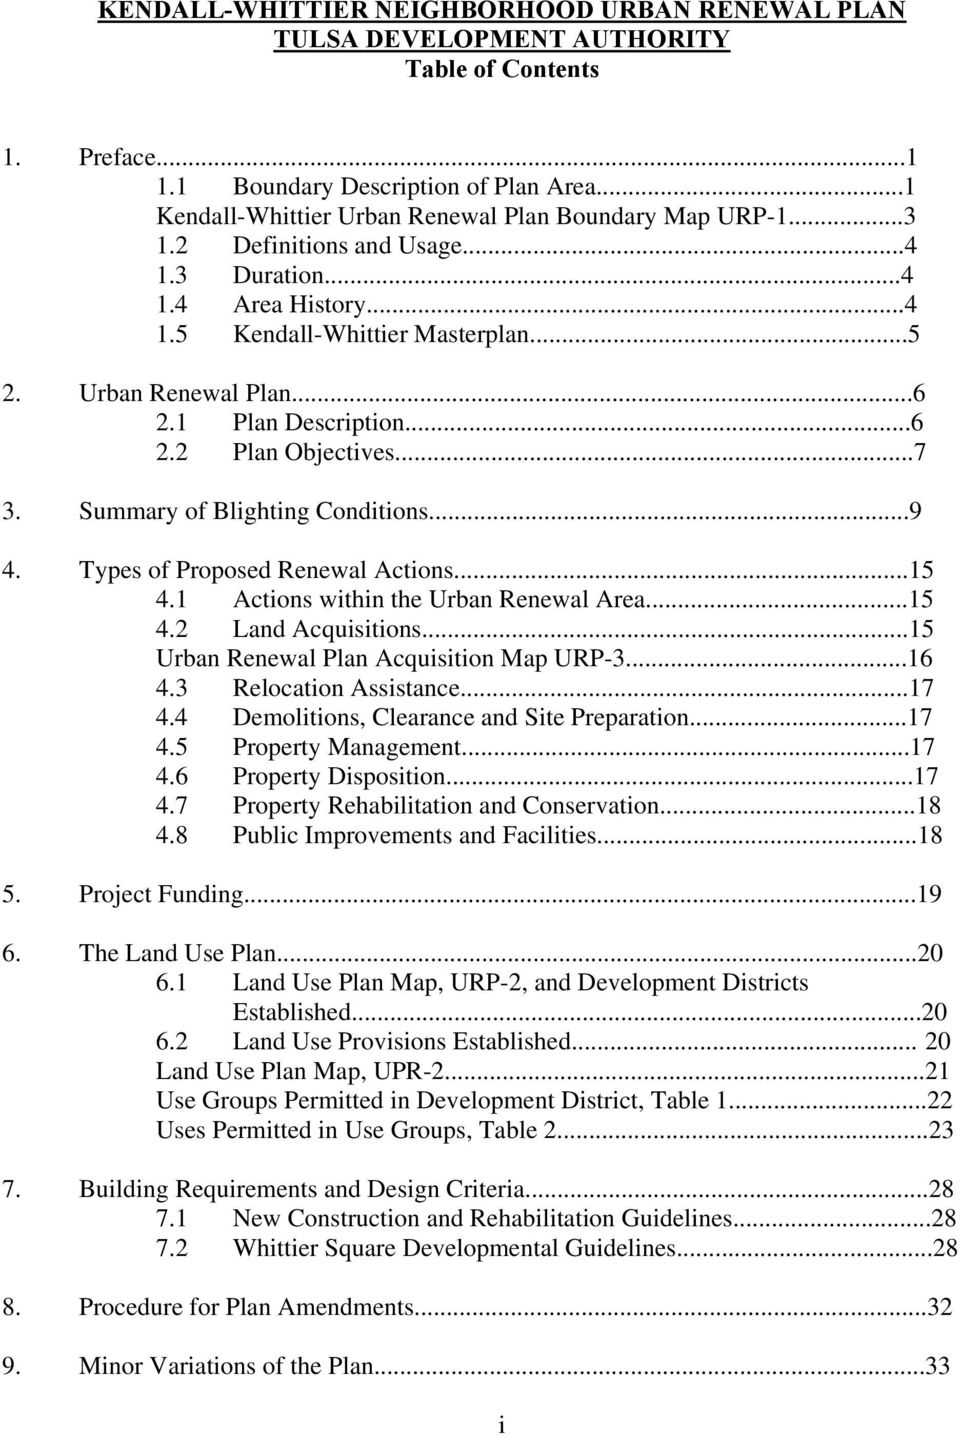 1 Plan Description...6 2.2 Plan Objectives...7 3. Summary of Blighting Conditions...9 4. Types of Proposed Renewal Actions...15 4.1 Actions within the Urban Renewal Area...15 4.2 Land Acquisitions.